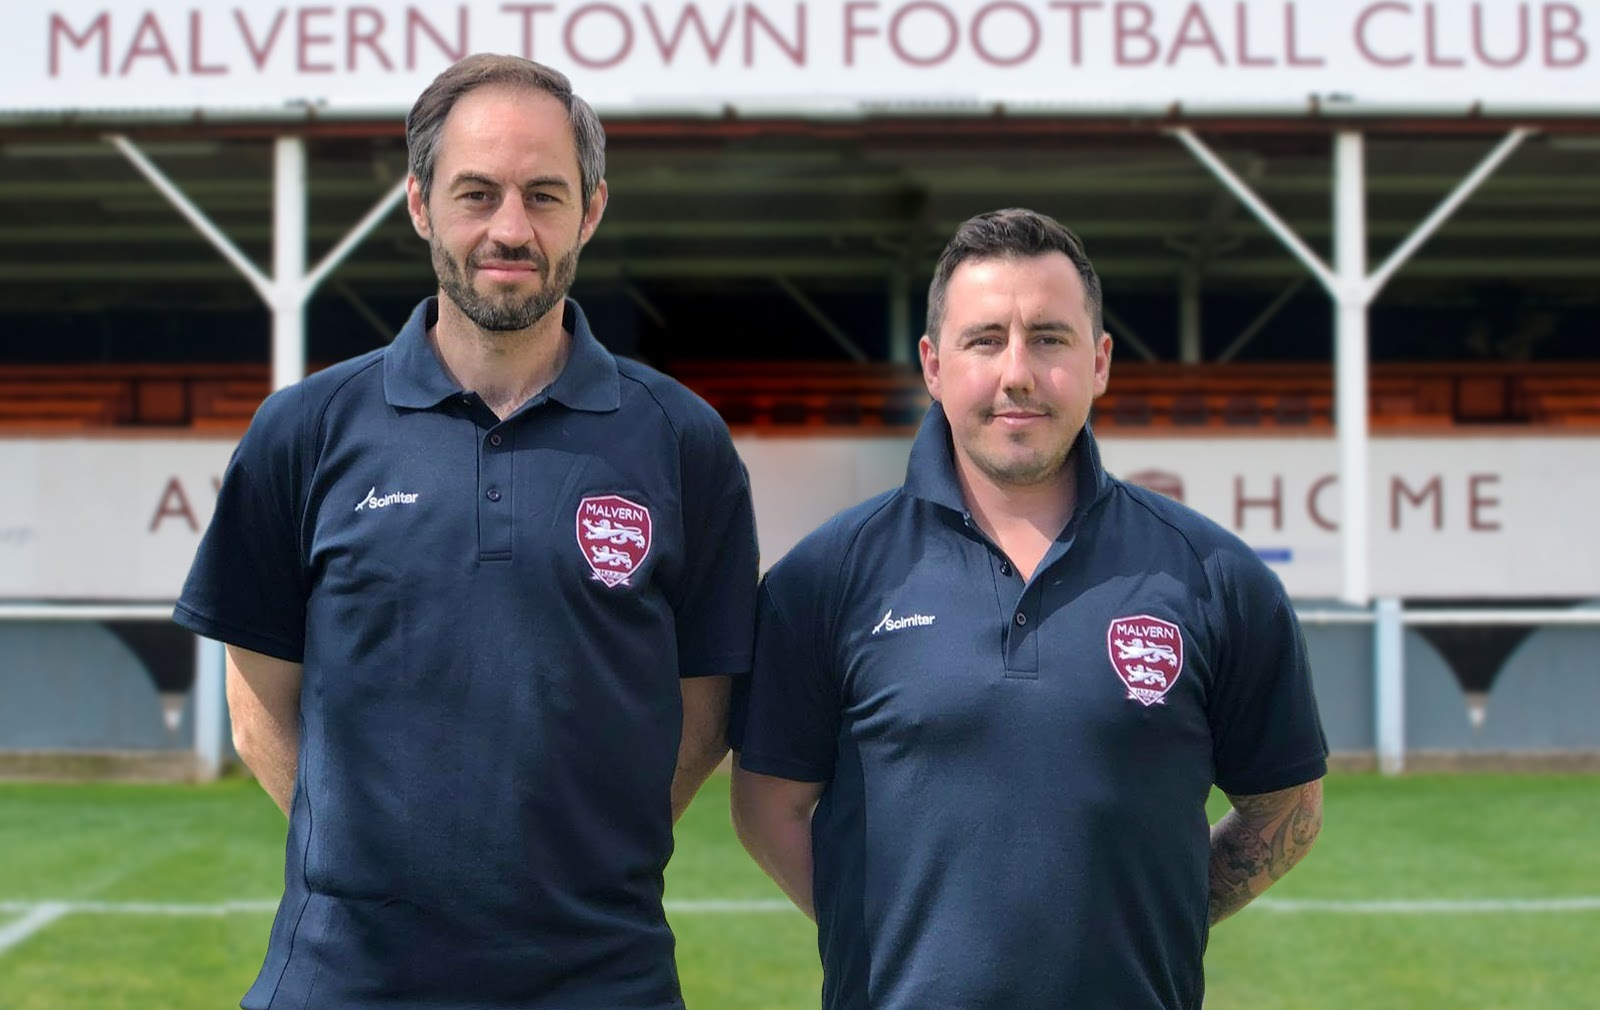 Joint managers Dene Whittal-Williams and Lee Hooper